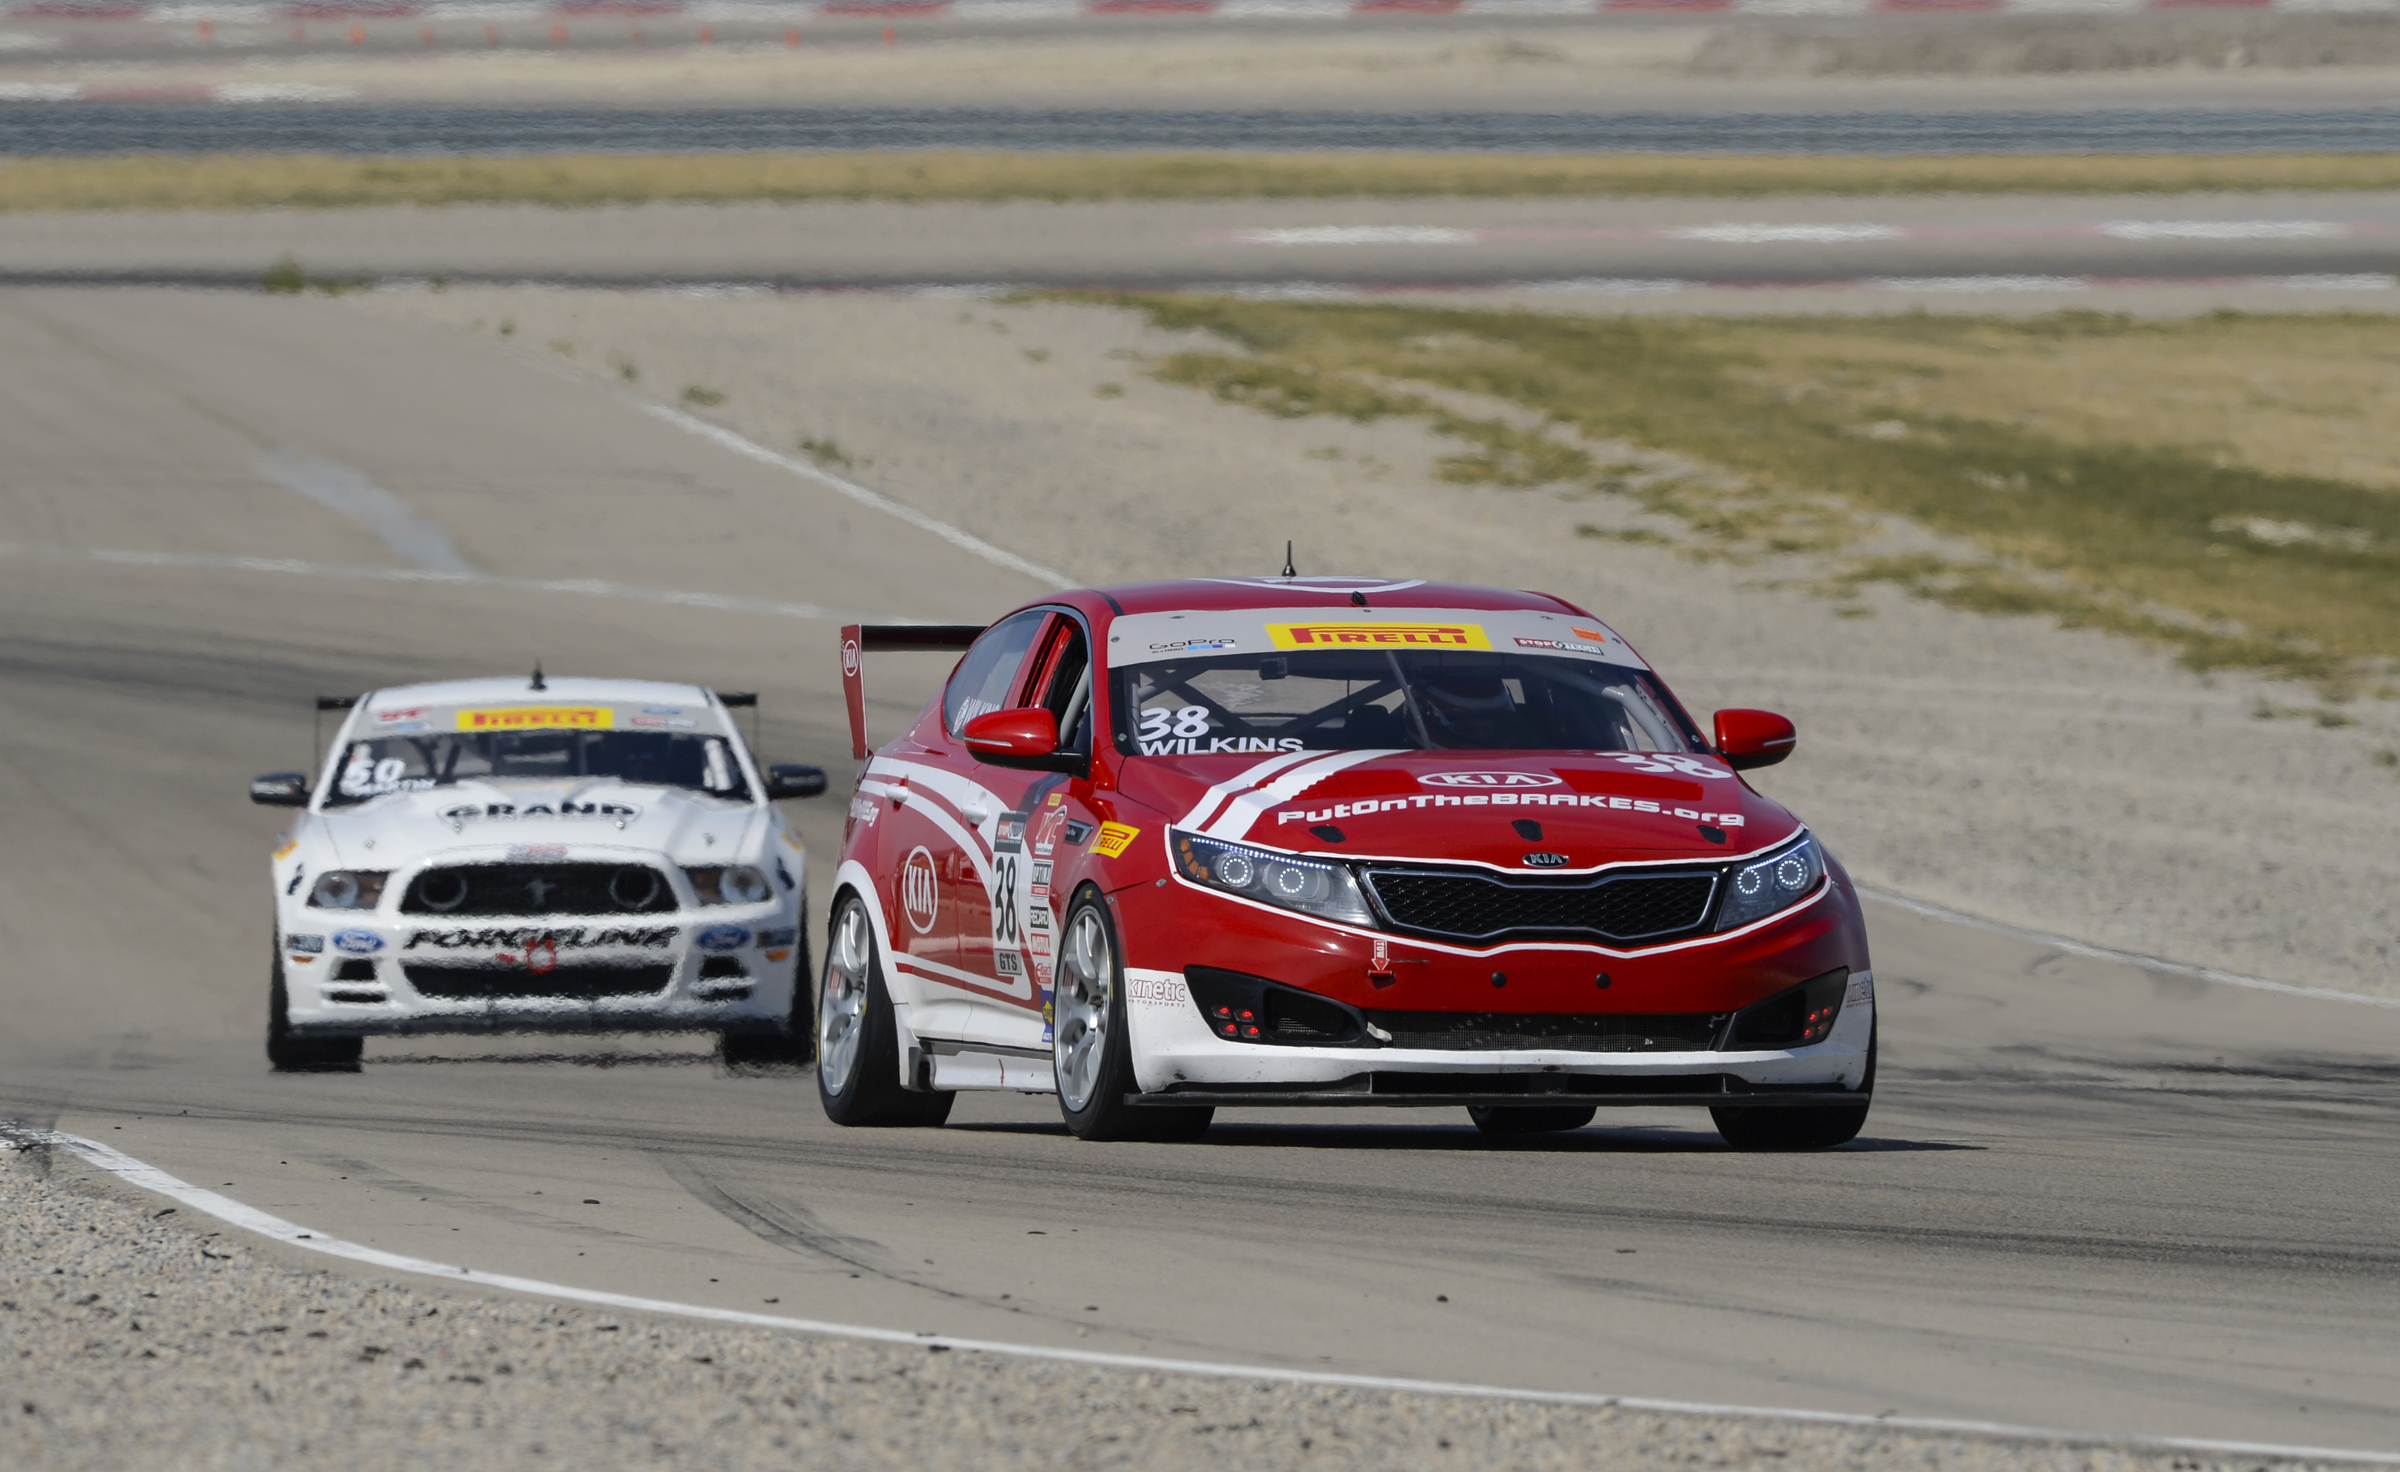 Kia Motors claimed the 2014 Pirelli World Challenge Grand Touring Sport and Touring Car A Manufacturer Championships at the series' season finale this past weekend at Miller Motorsports Park in Tooele, Utah. (image credit: Kia Motors America)